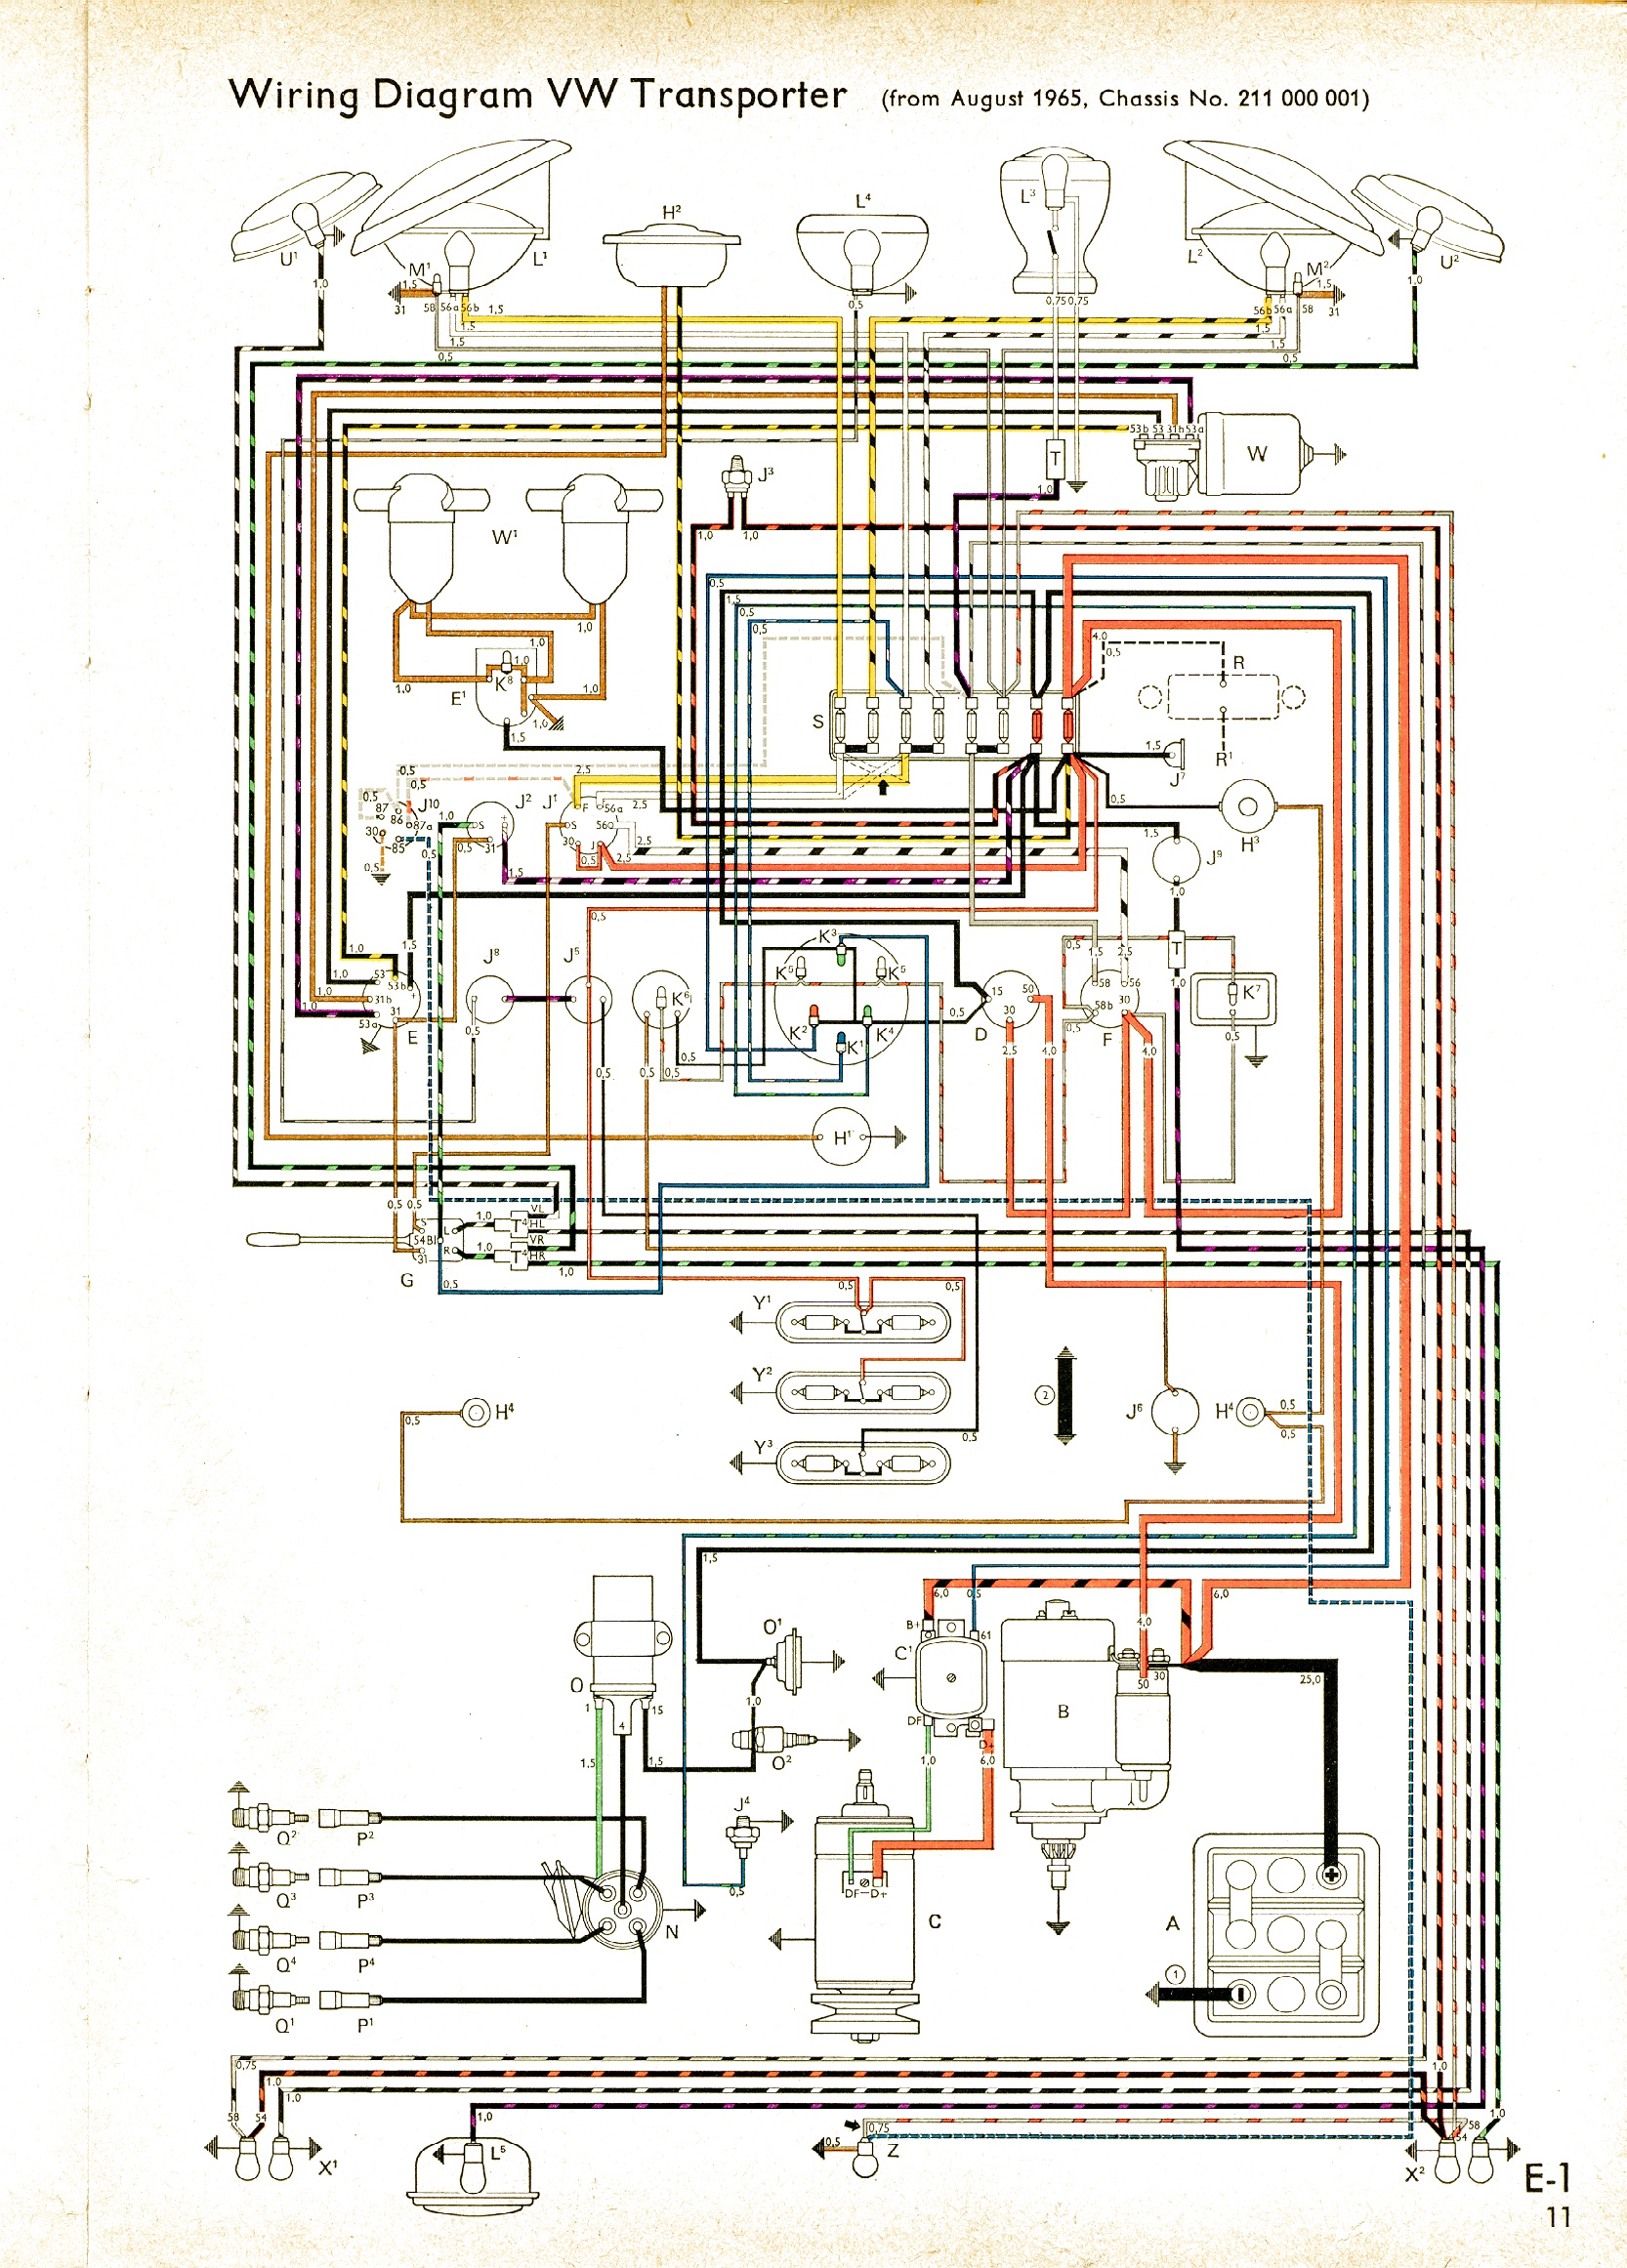 bus 65 bus wiring diagram vw wiring harness diagram \u2022 wiring diagrams j 1971 vw bus wiring diagram at crackthecode.co